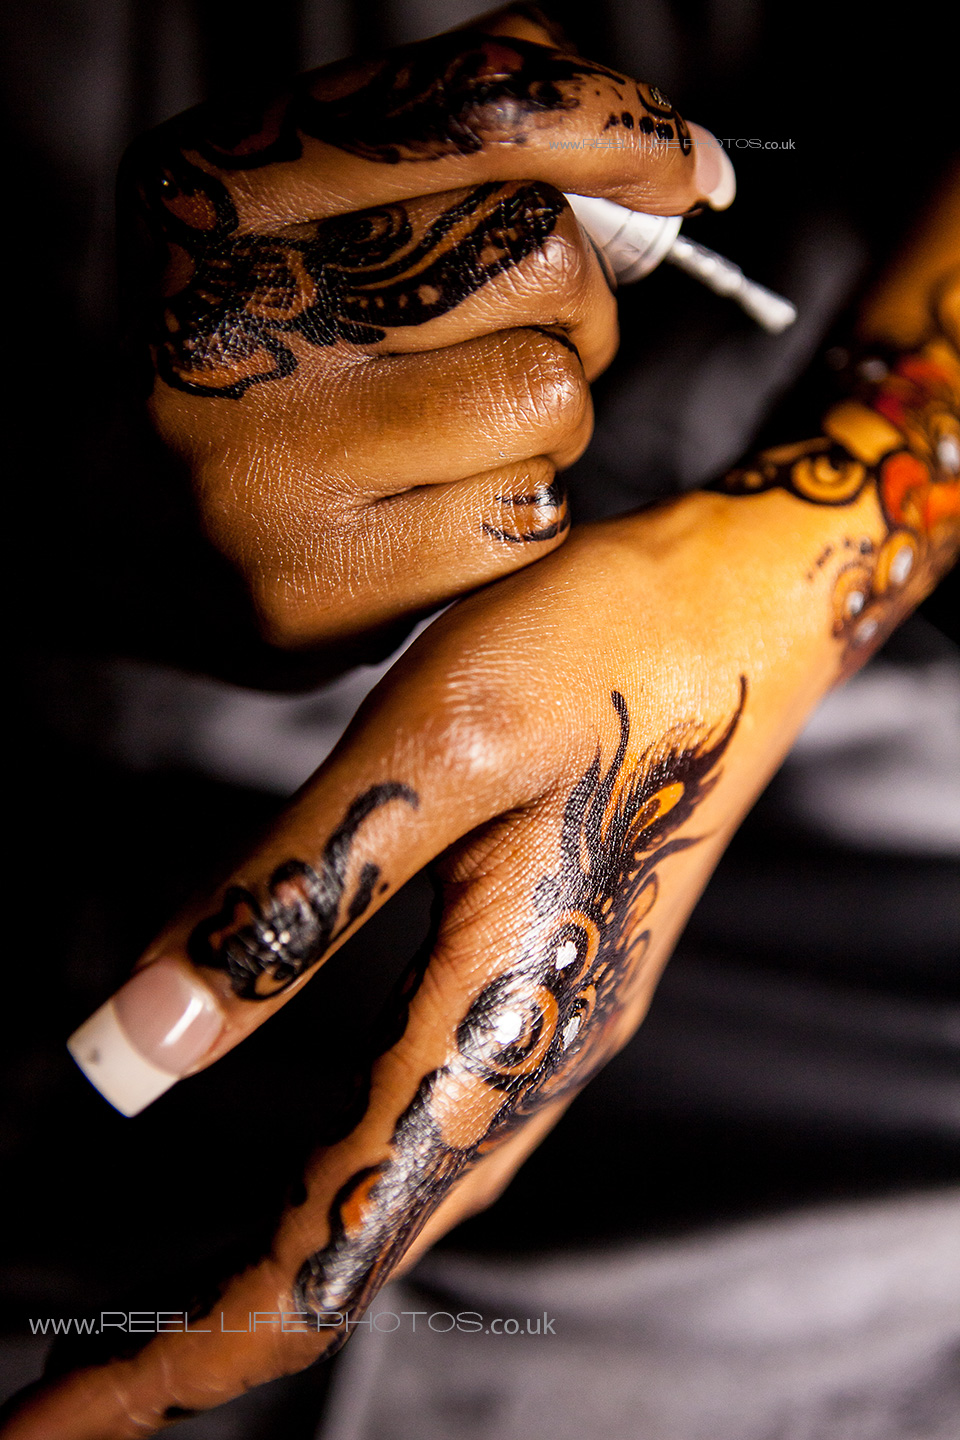 Somali wedding pictures of hands and henna painting